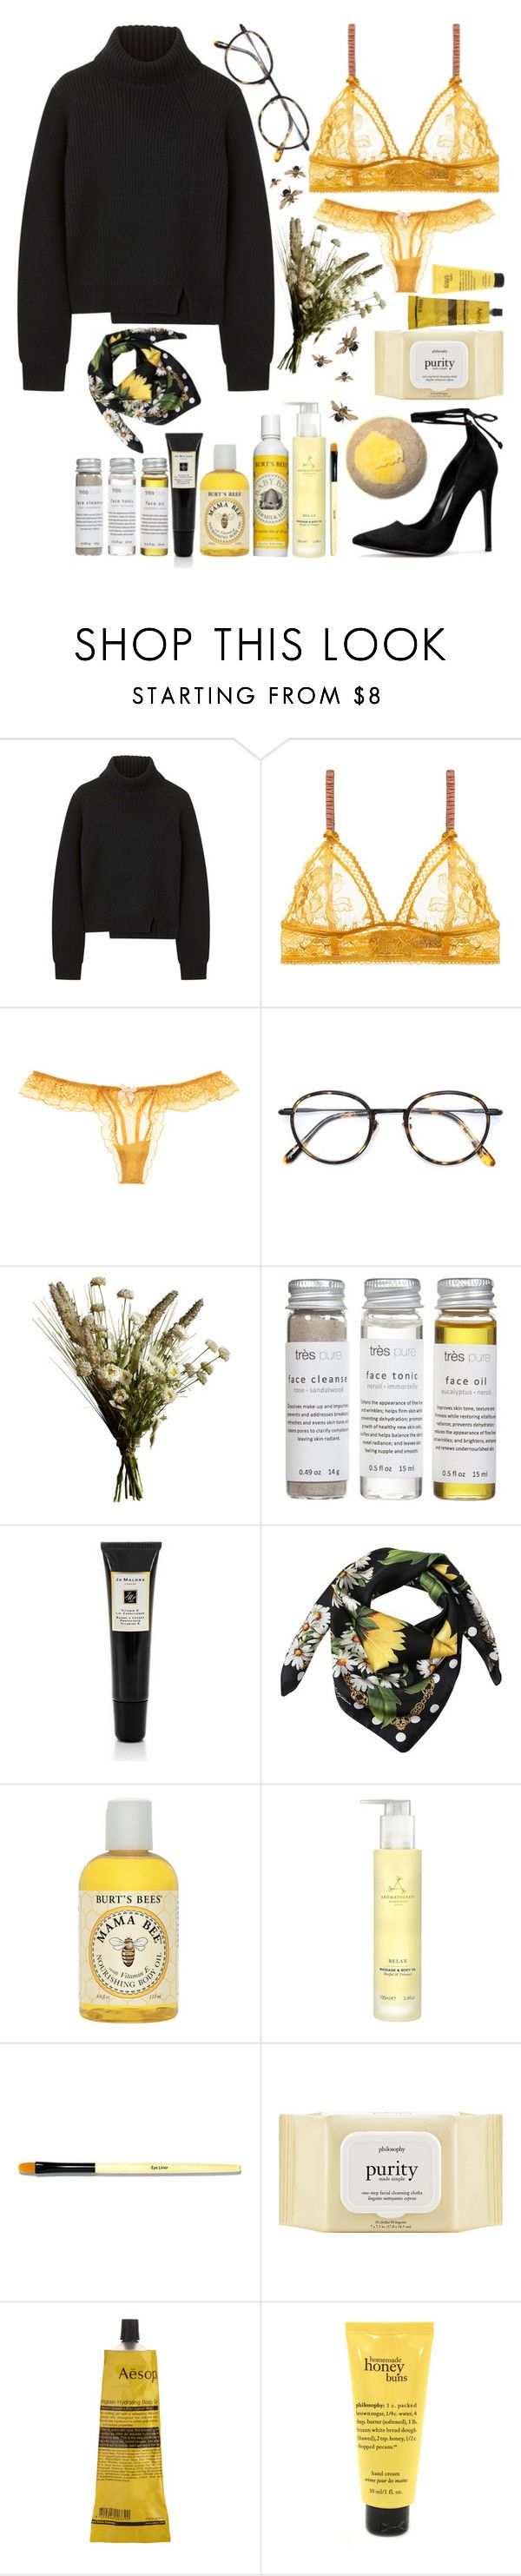 """""""∵m y   c a k e∴"""" by lilsavageboo ❤ liked on Polyvore featuring Proenza Schouler, STELLA McCARTNEY, Eberjey, Frency & Mercury, Abigail Ahern, Très Pure, Jo Malone, Dolce&Gabbana, Burt's Bees and Aromatherapy Associates"""